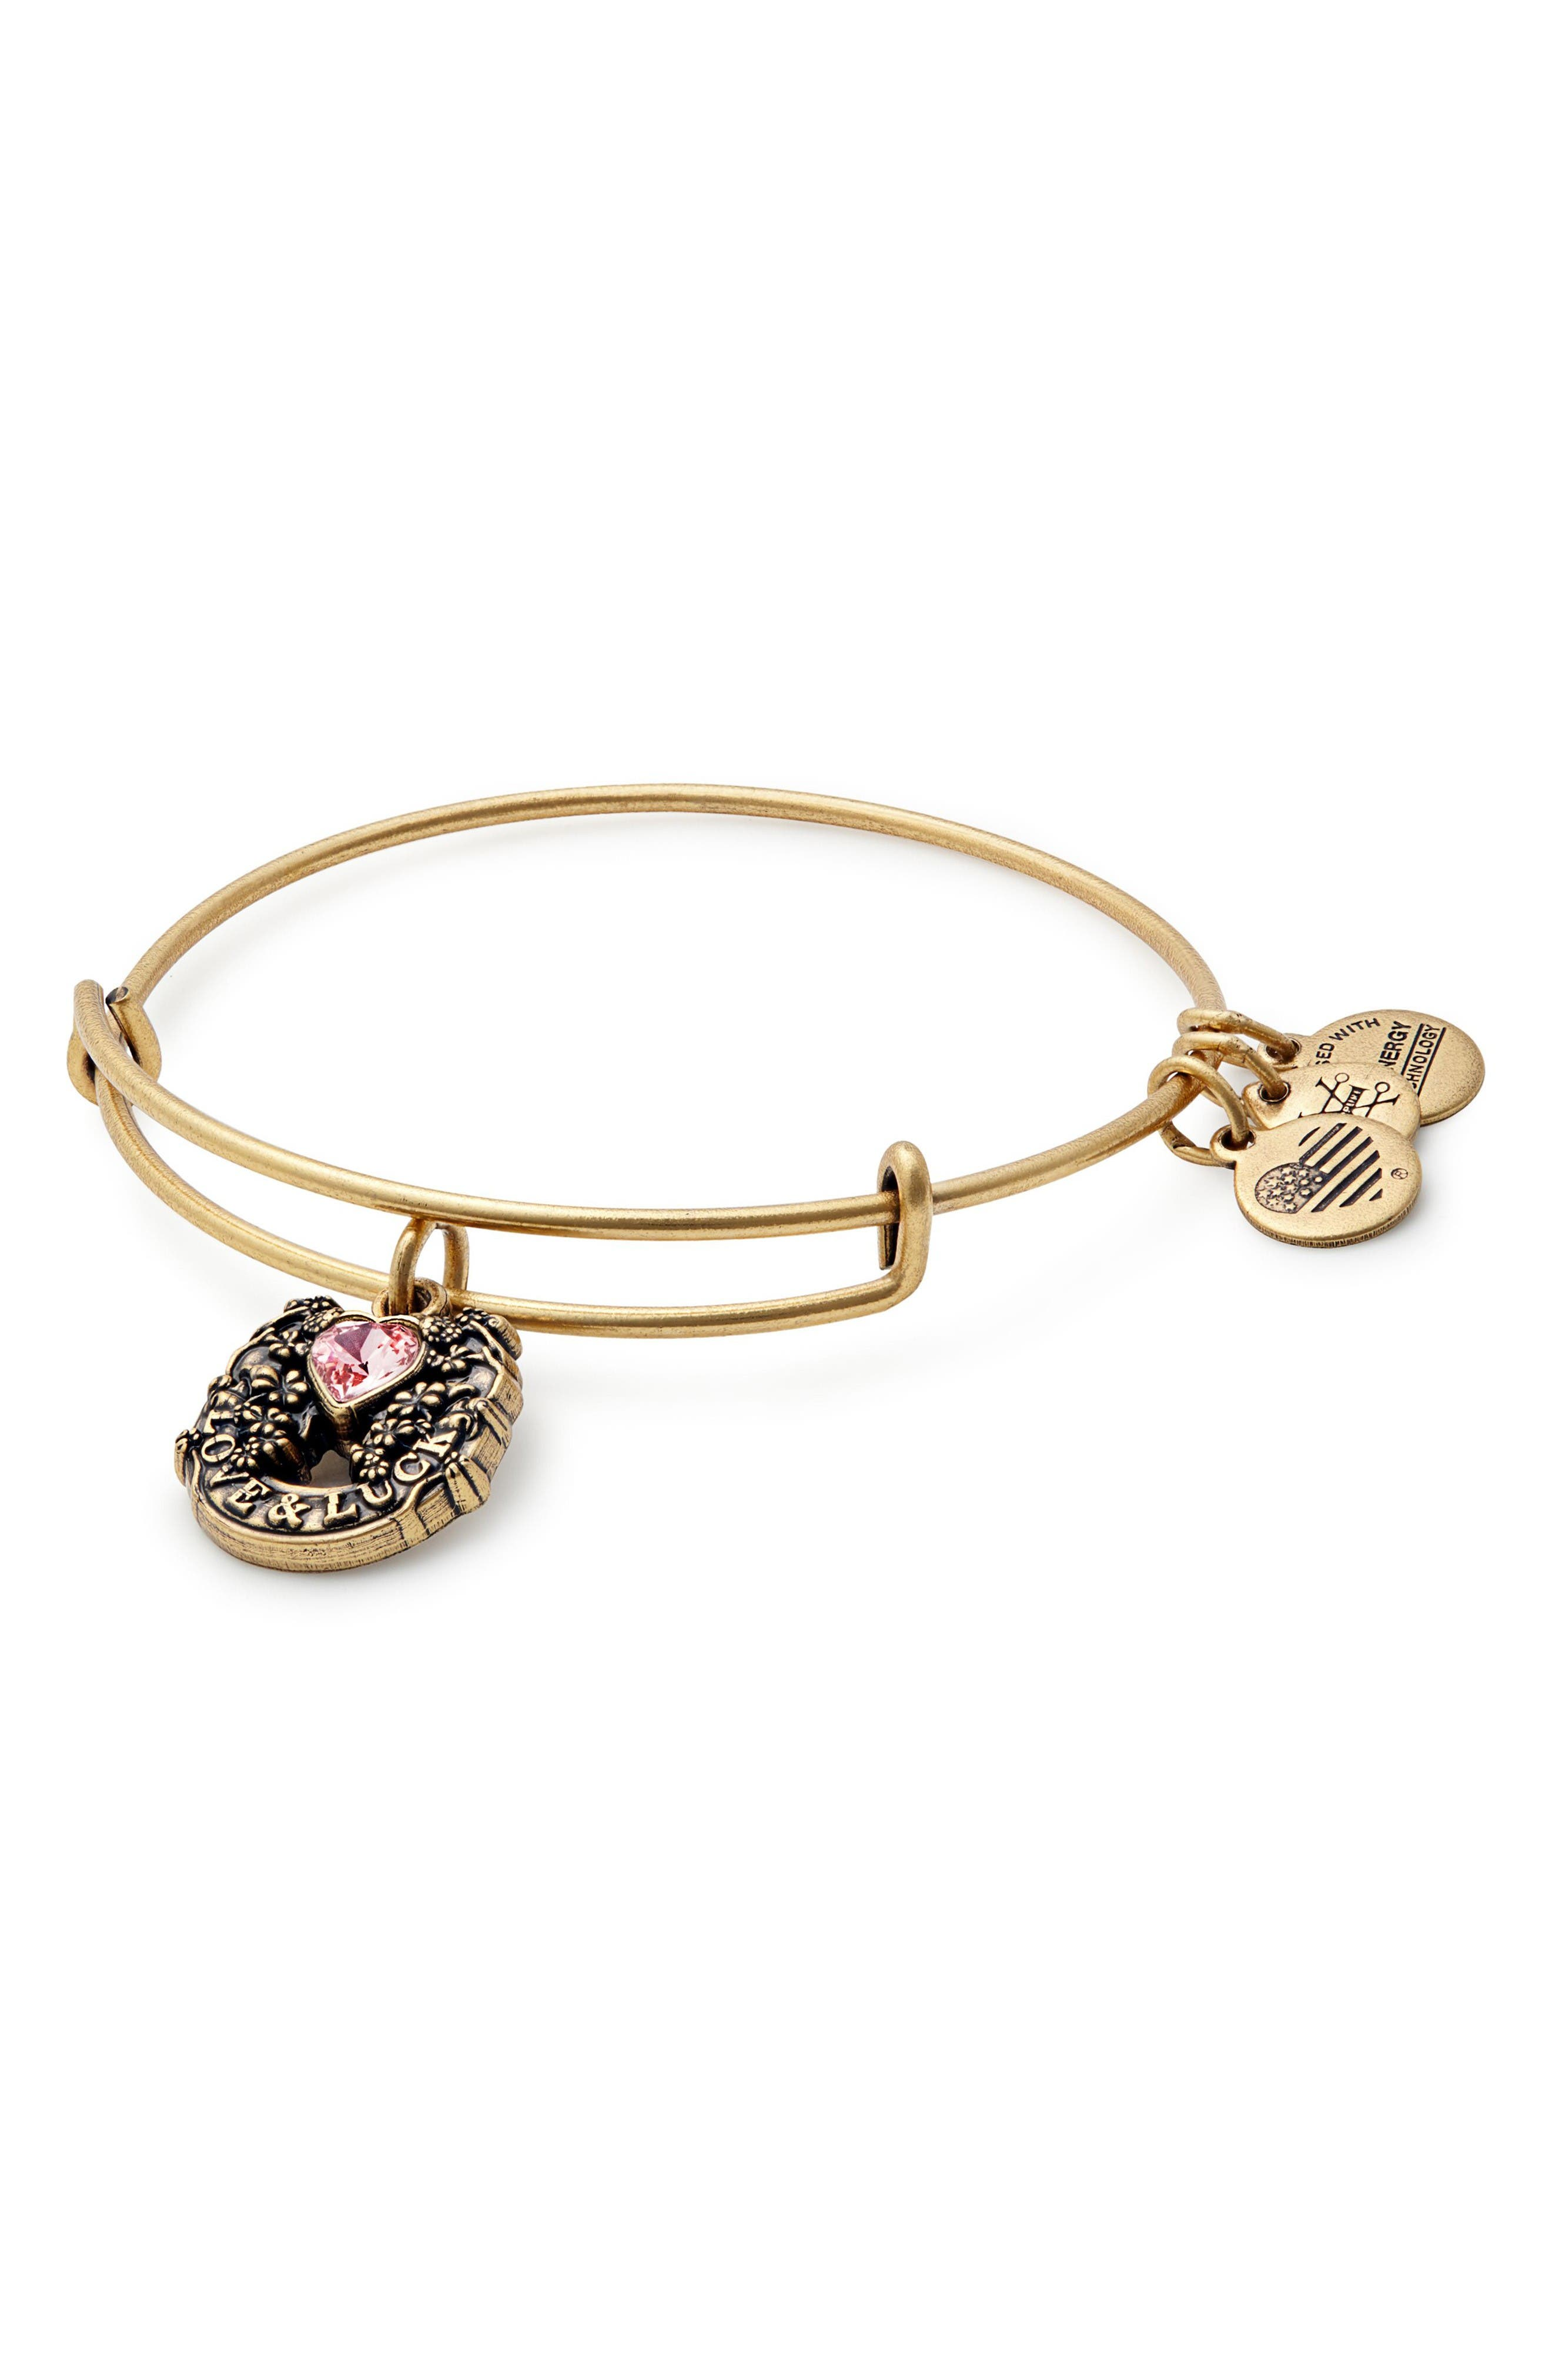 Main Image - Alex and Ani Fortune's Favor Adjustable Wire Bangle (Nordstrom Exclusive)